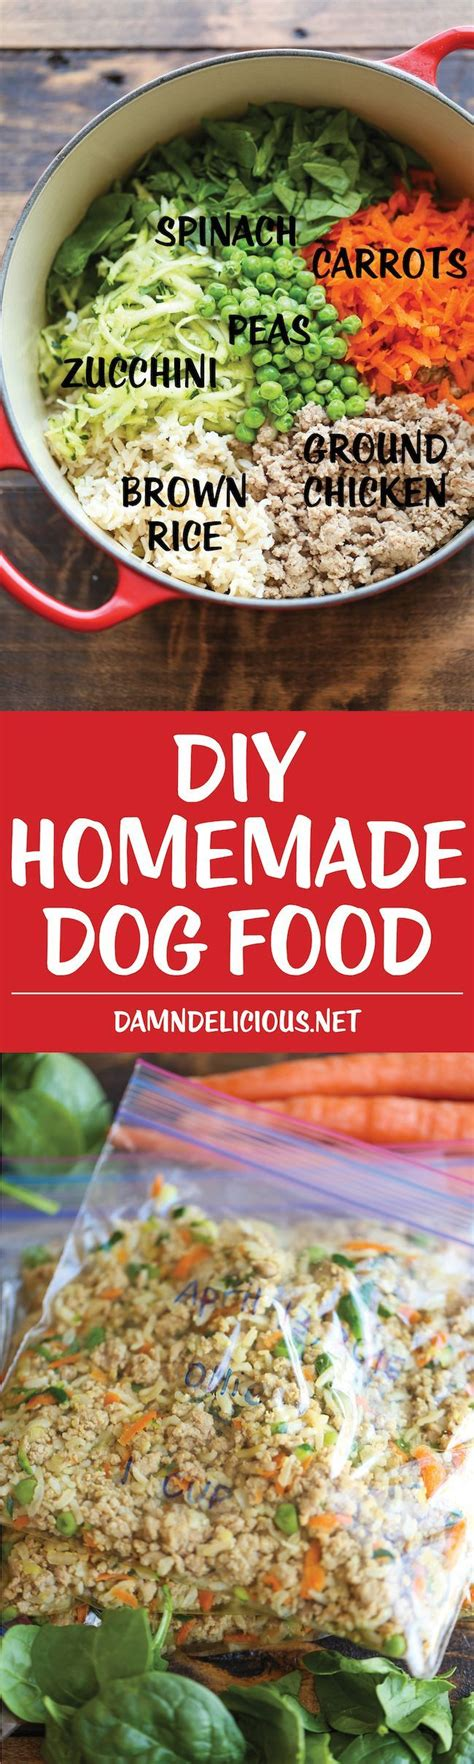 healthy food for puppies 100 food recipes on food canned food and food for